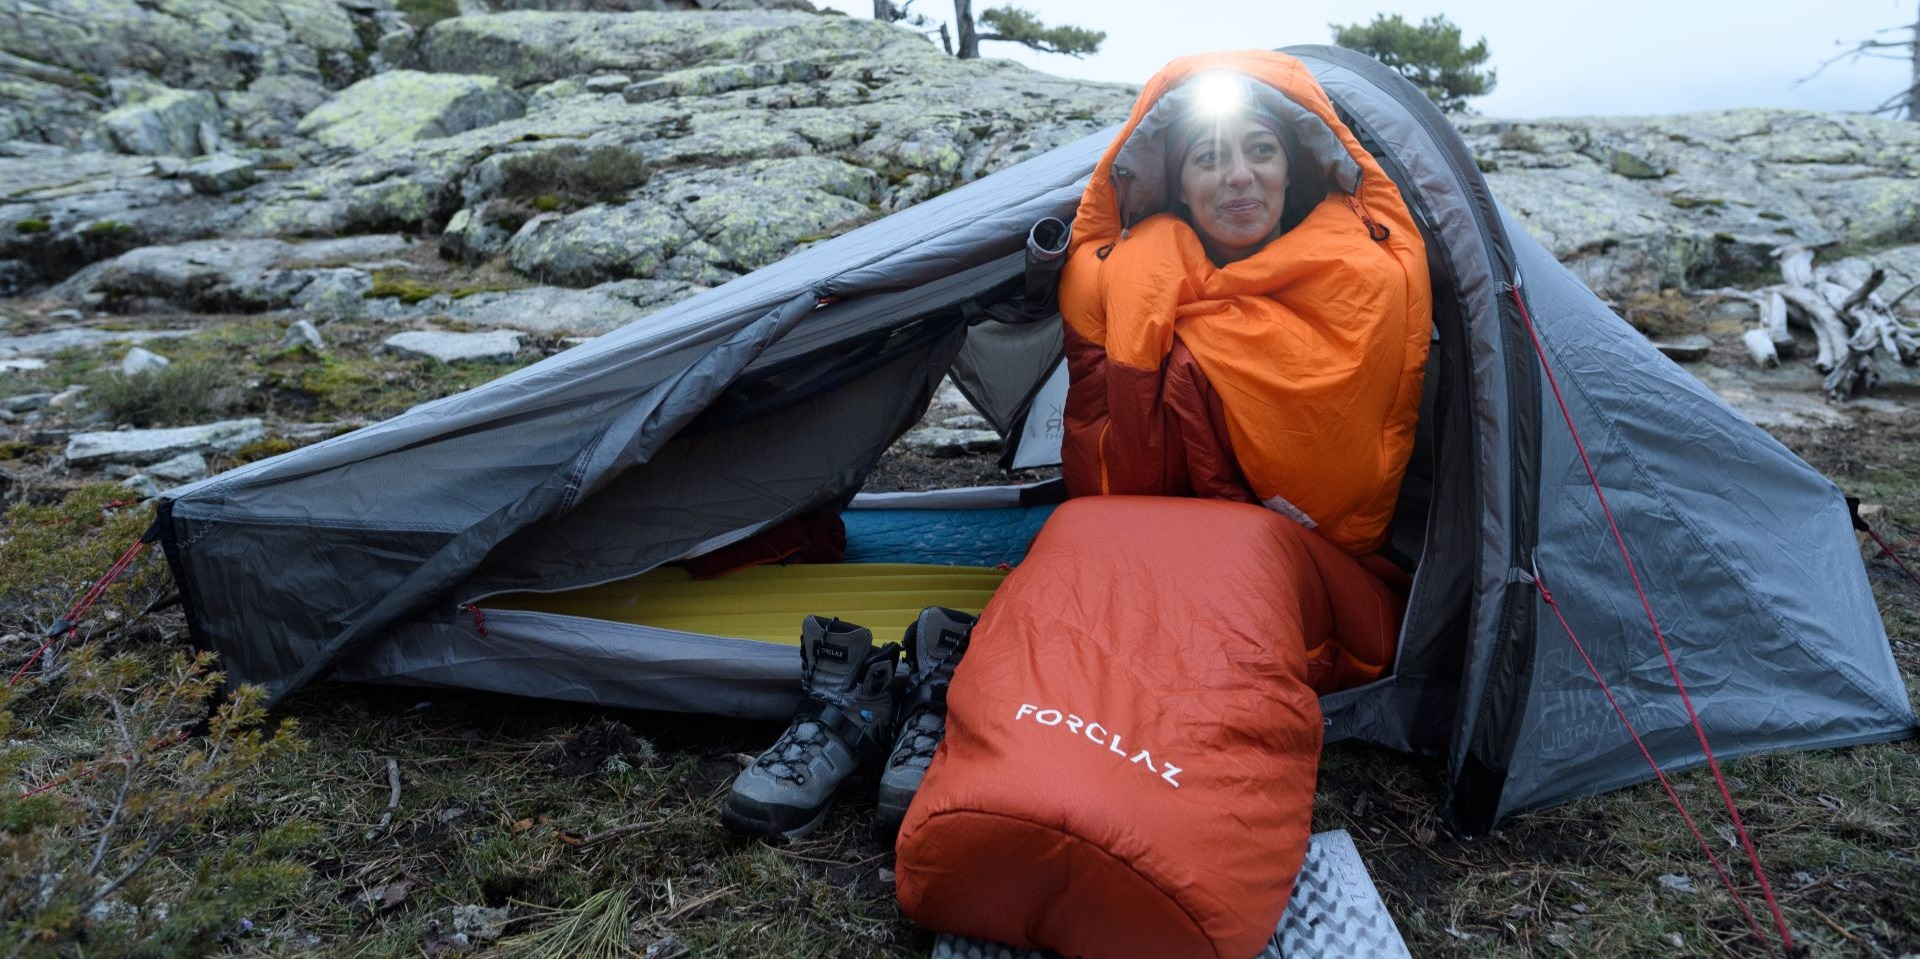 How To Stay Warm In Your Sleeping Bag?